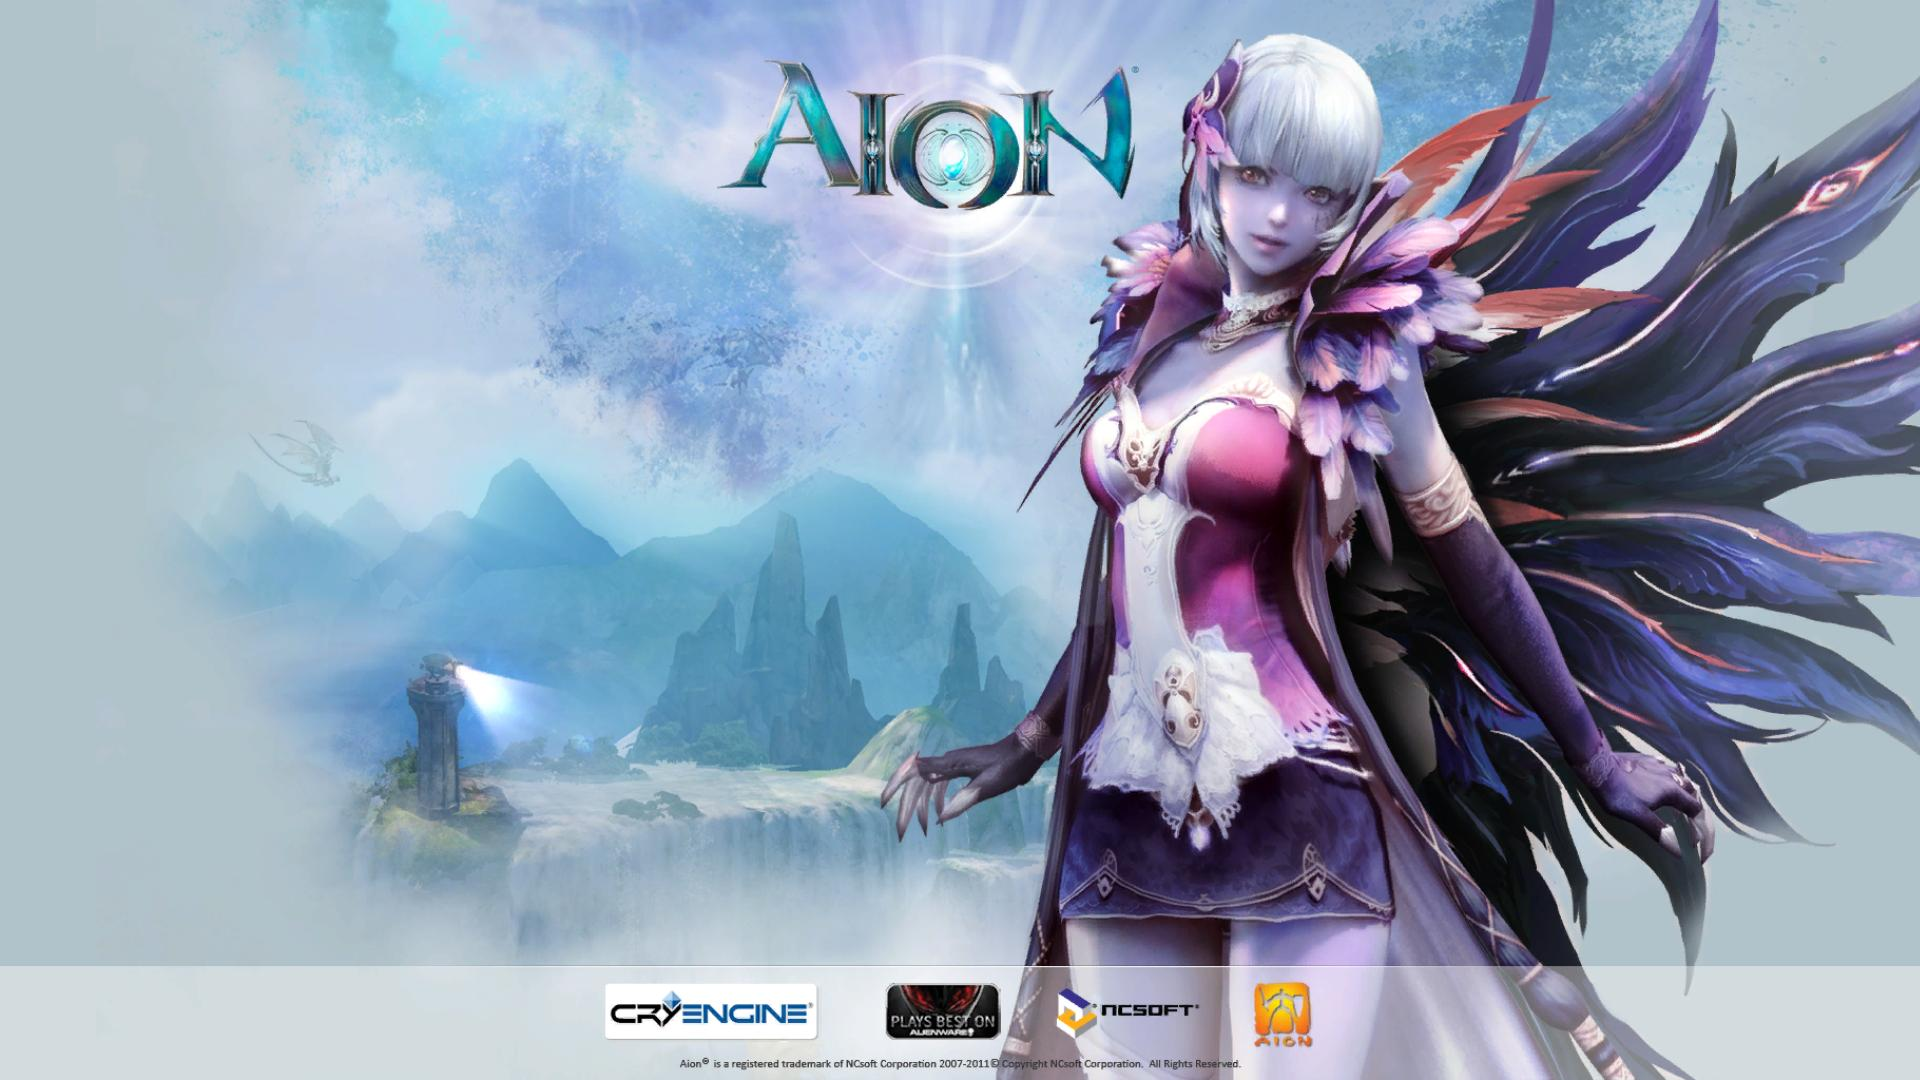 View Fullsize Aion: The Tower of Eternity Image